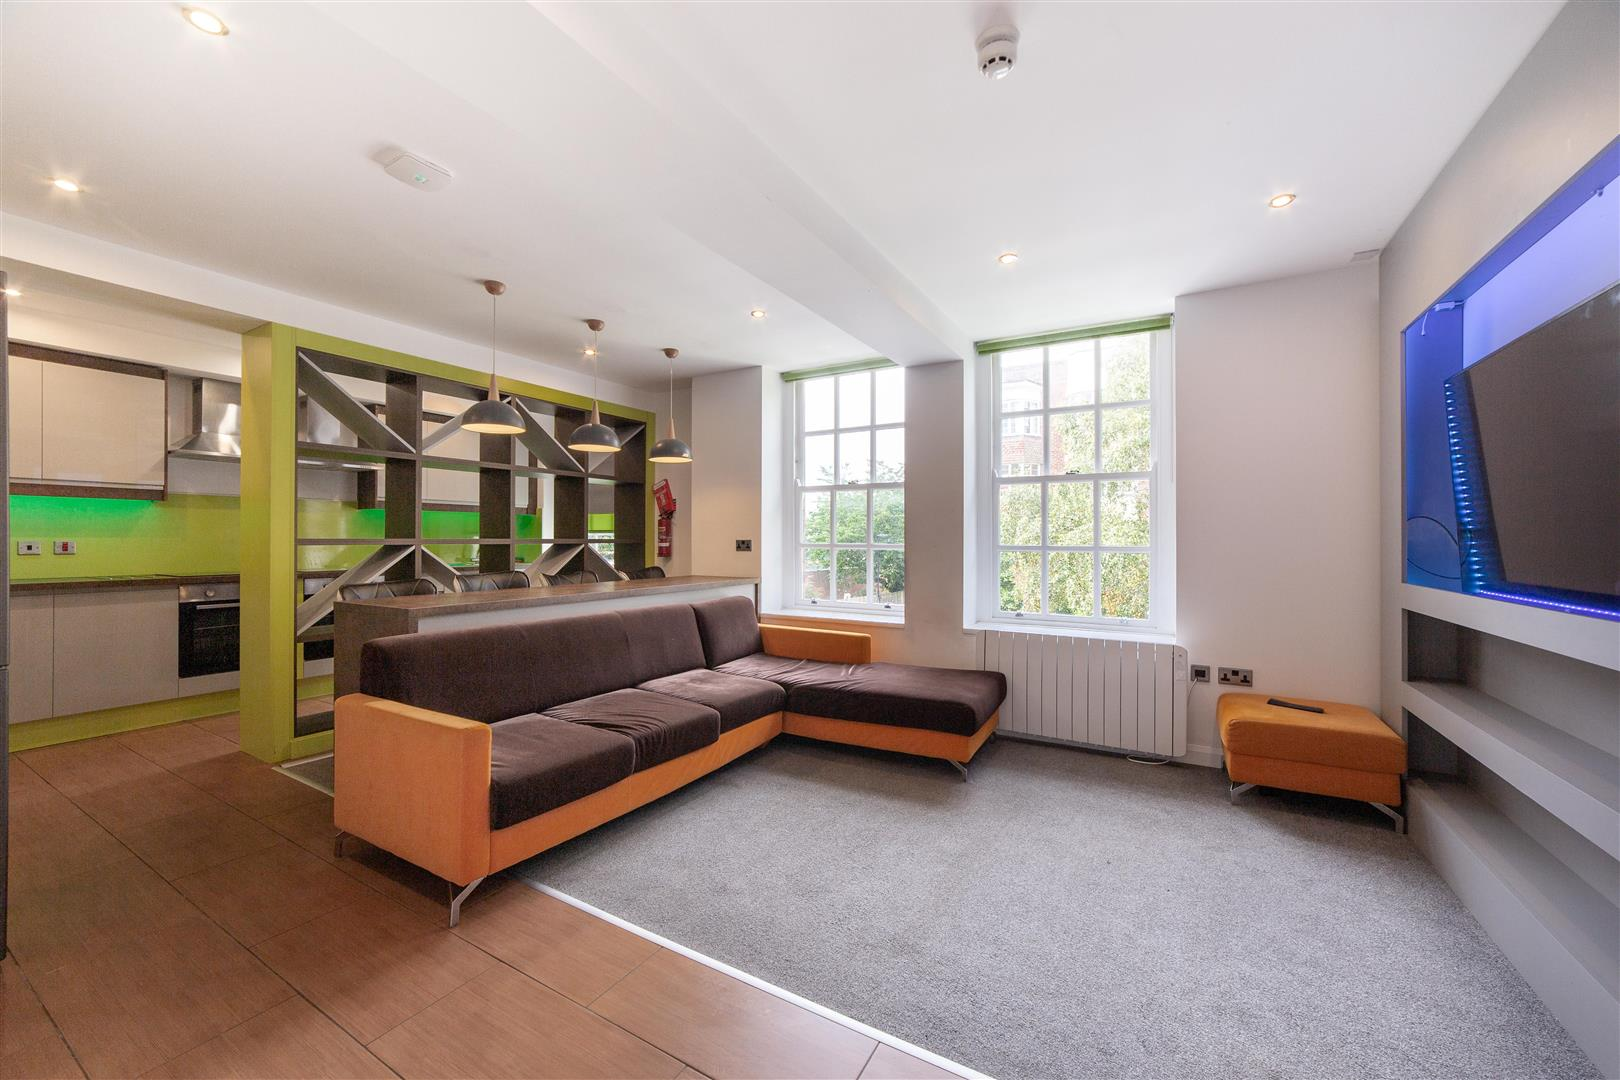 8 bed apartment to rent in Jesmond, NE2 4DN, NE2